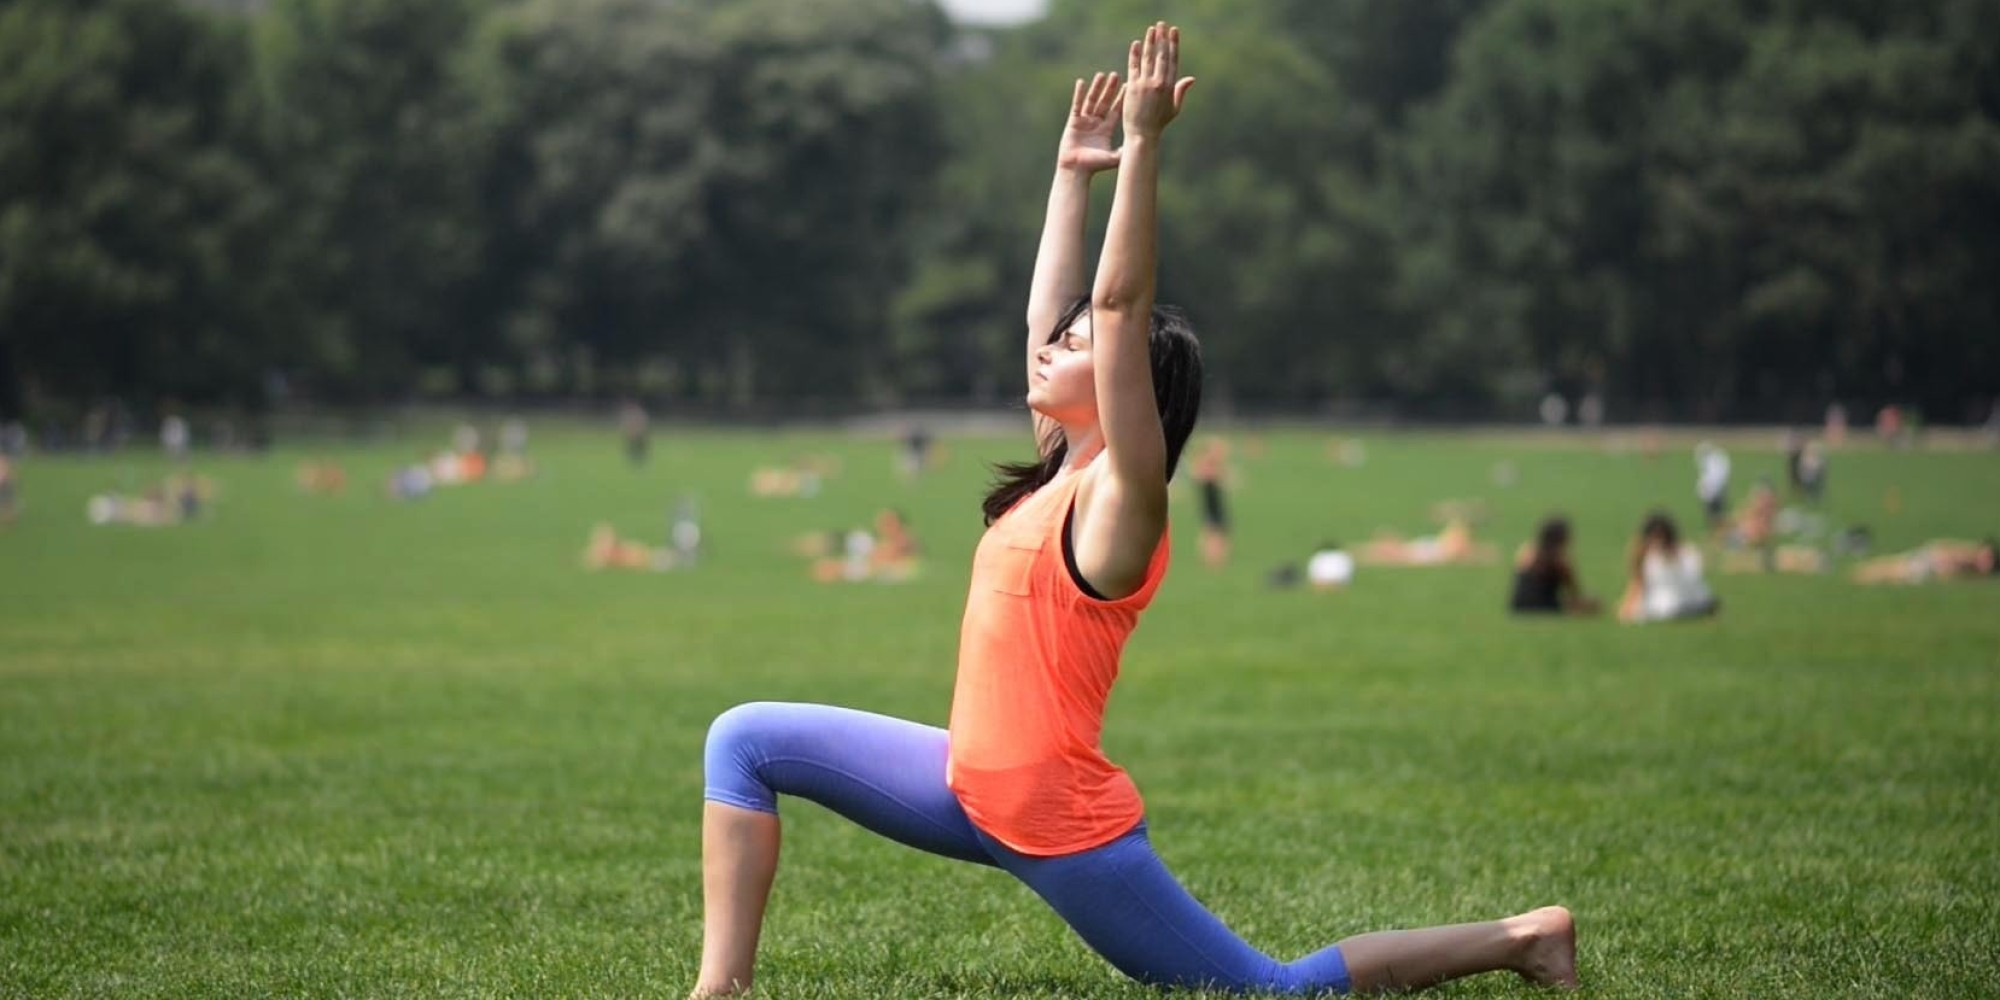 What are some good standing yoga poses for beginners? 10